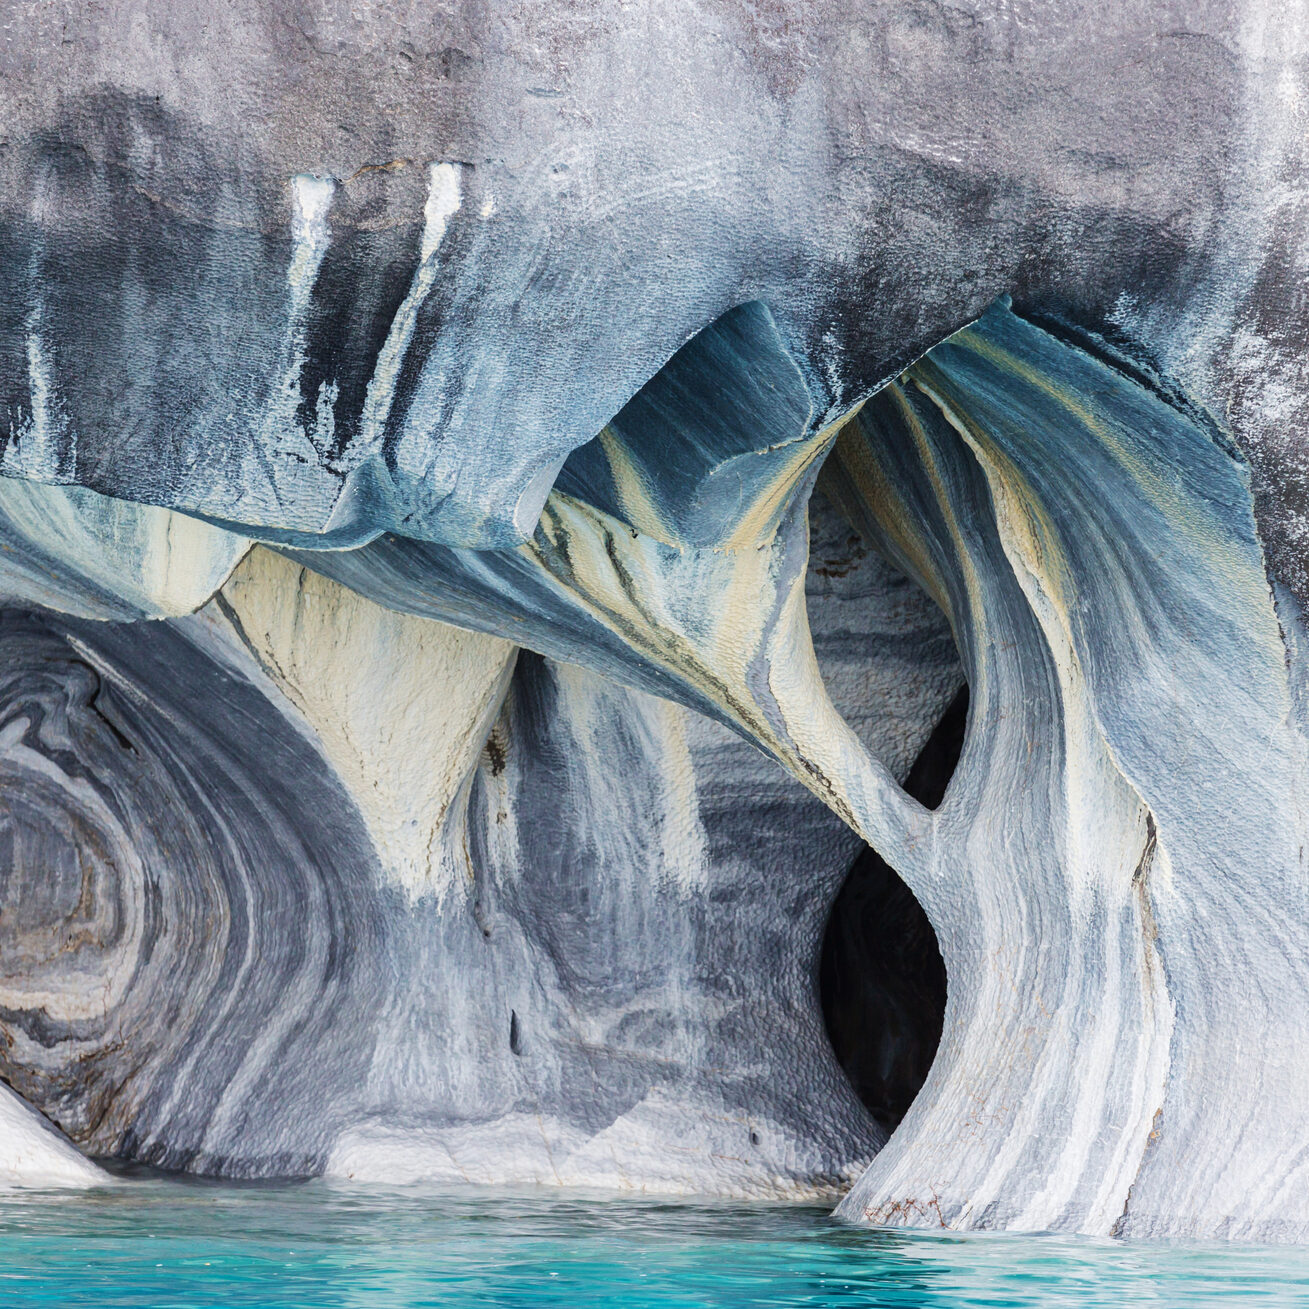 Unusual marble caves on the lake of General Carrera, Patagonia, Chile. Carretera Austral trip.